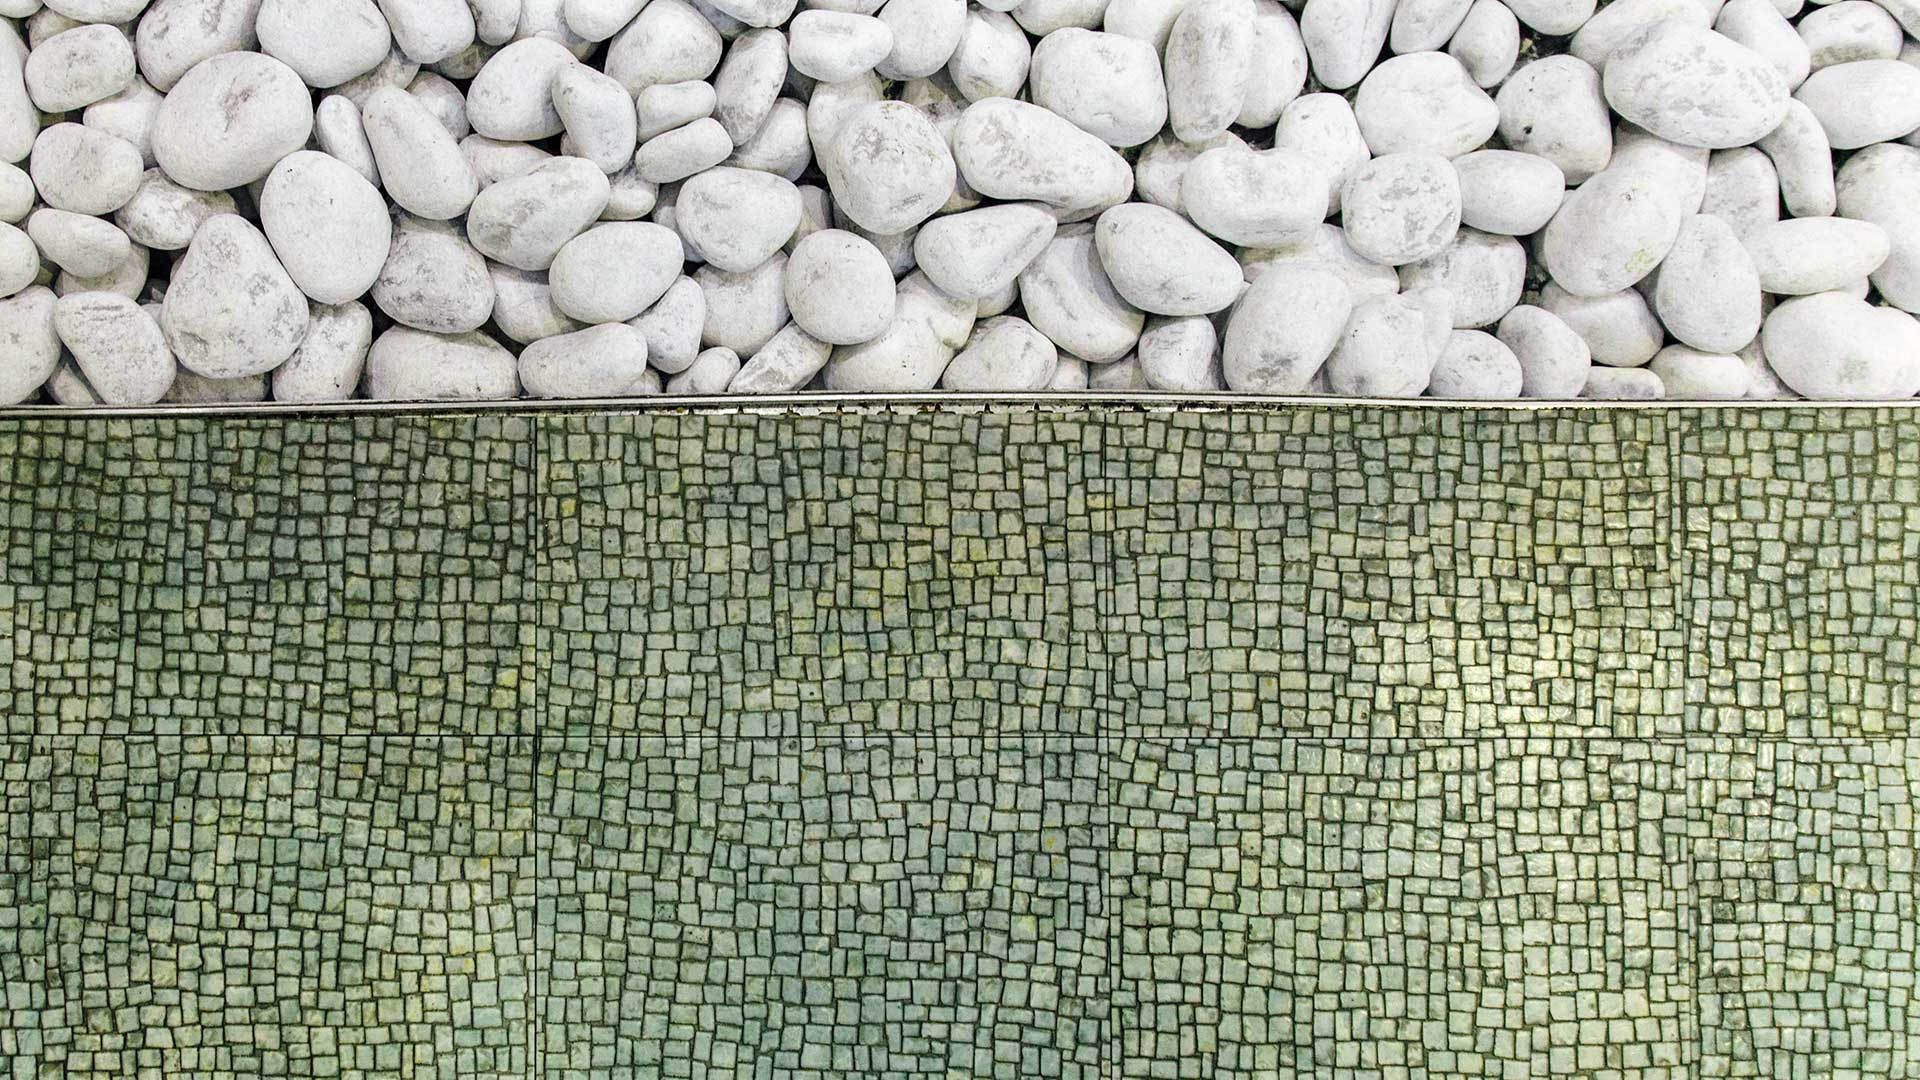 Textured Stylized Image with Rocks and Fabric